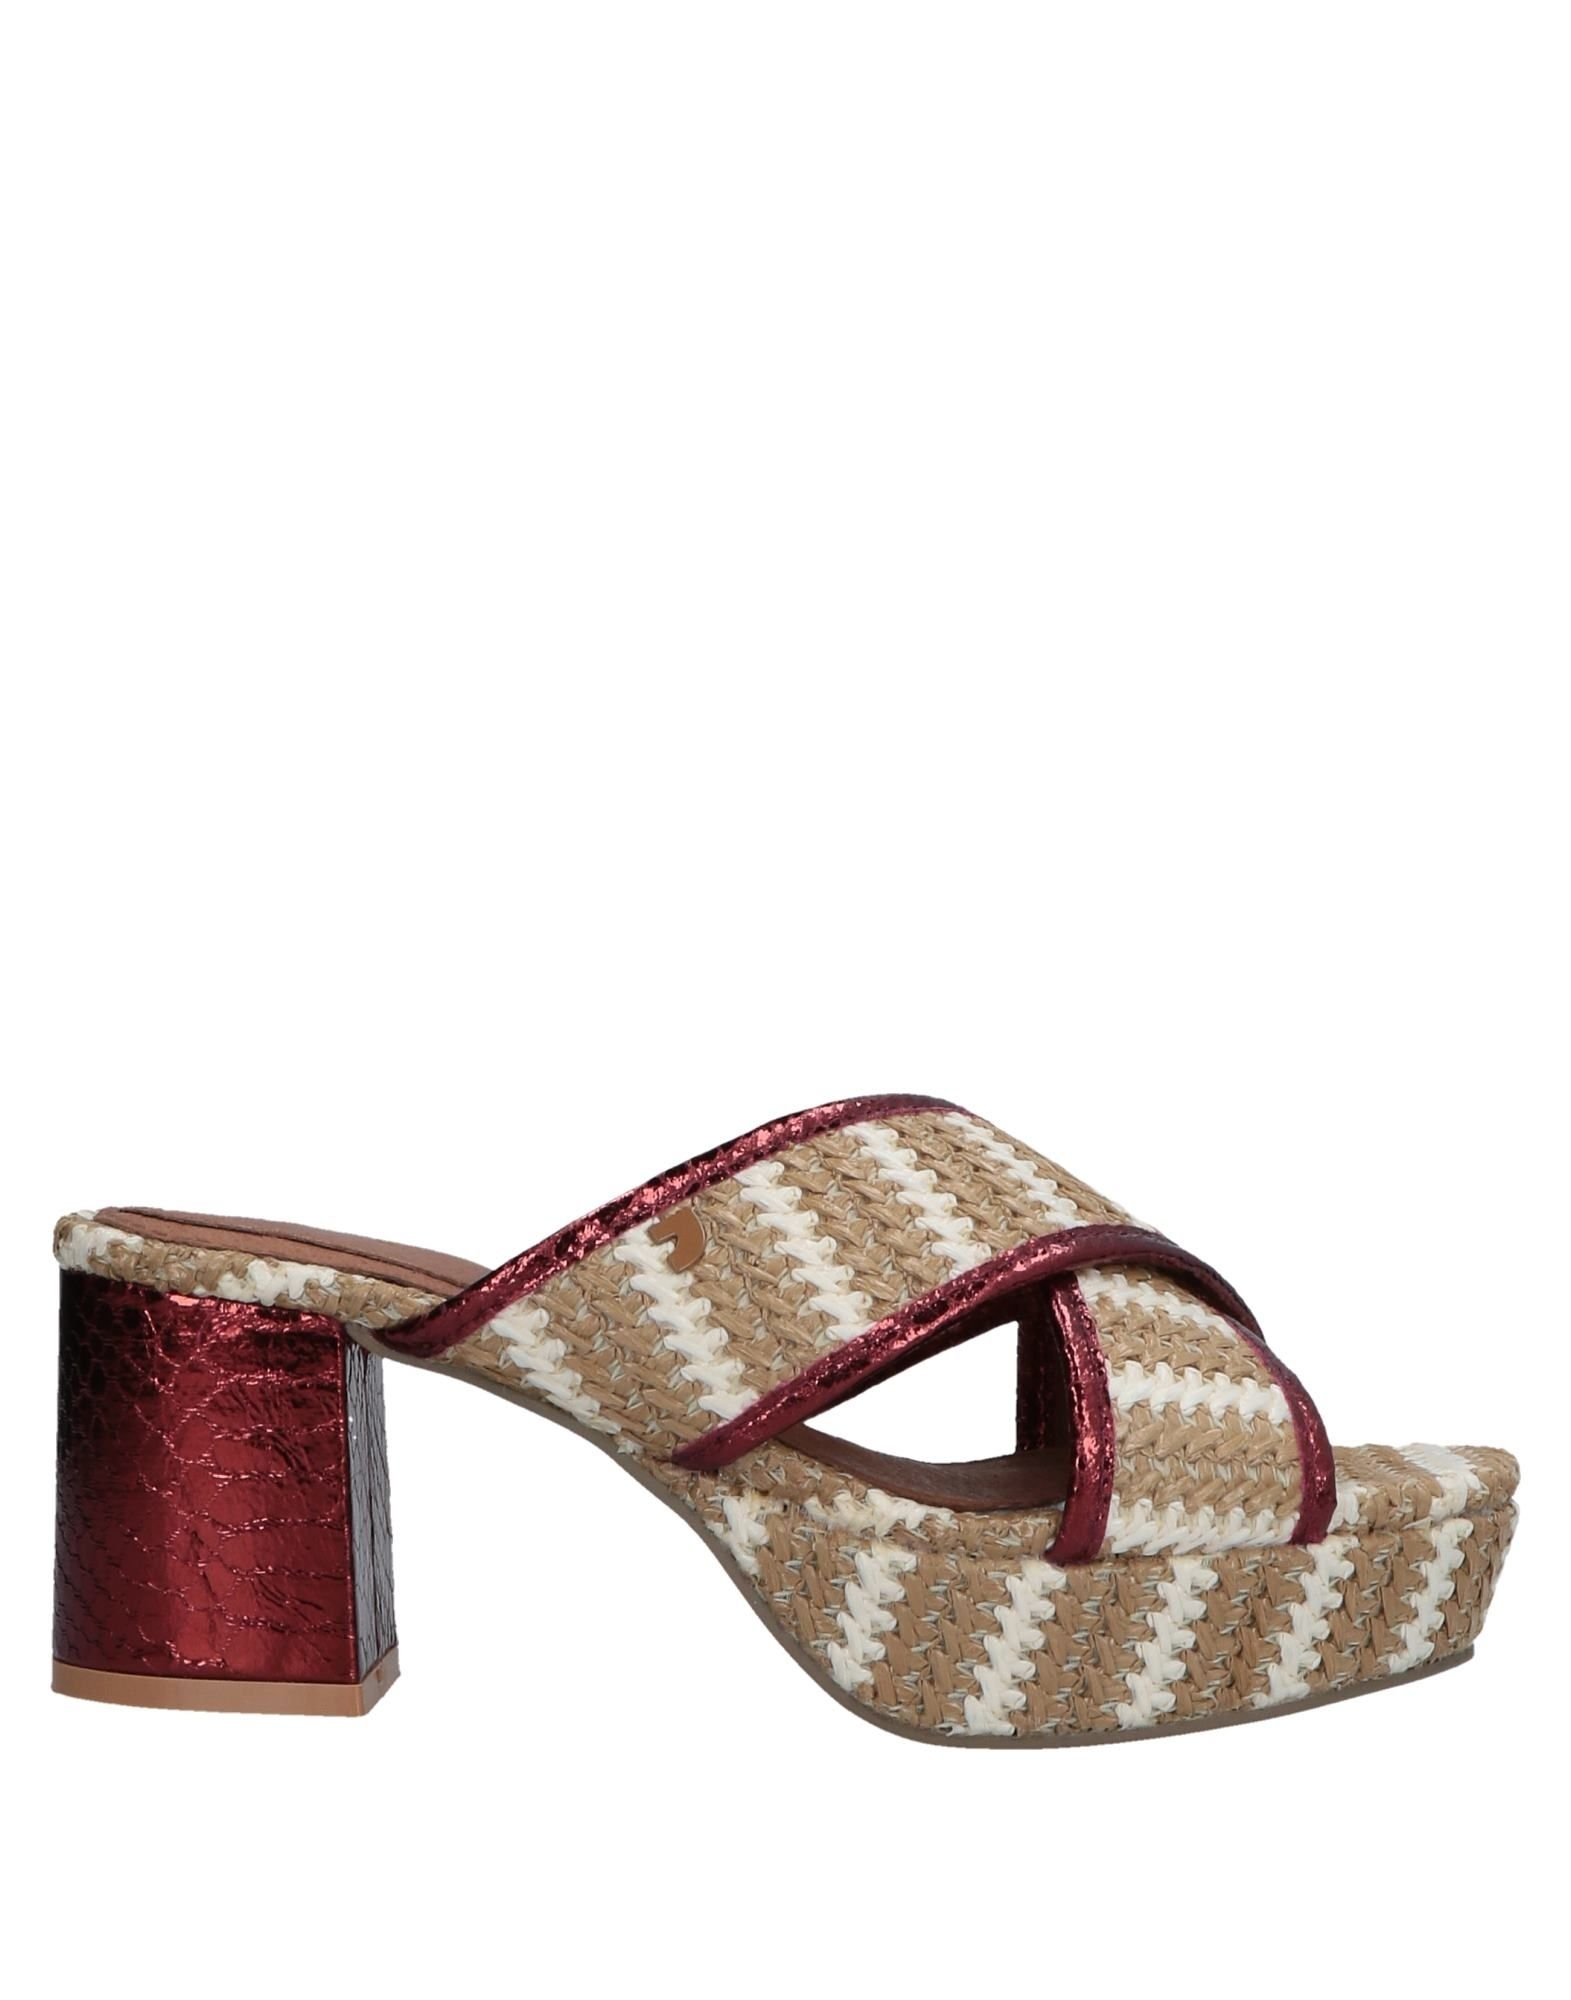 Gioseppo Sandals - Women Gioseppo Sandals online on 11575841FW  United Kingdom - 11575841FW on d948f5